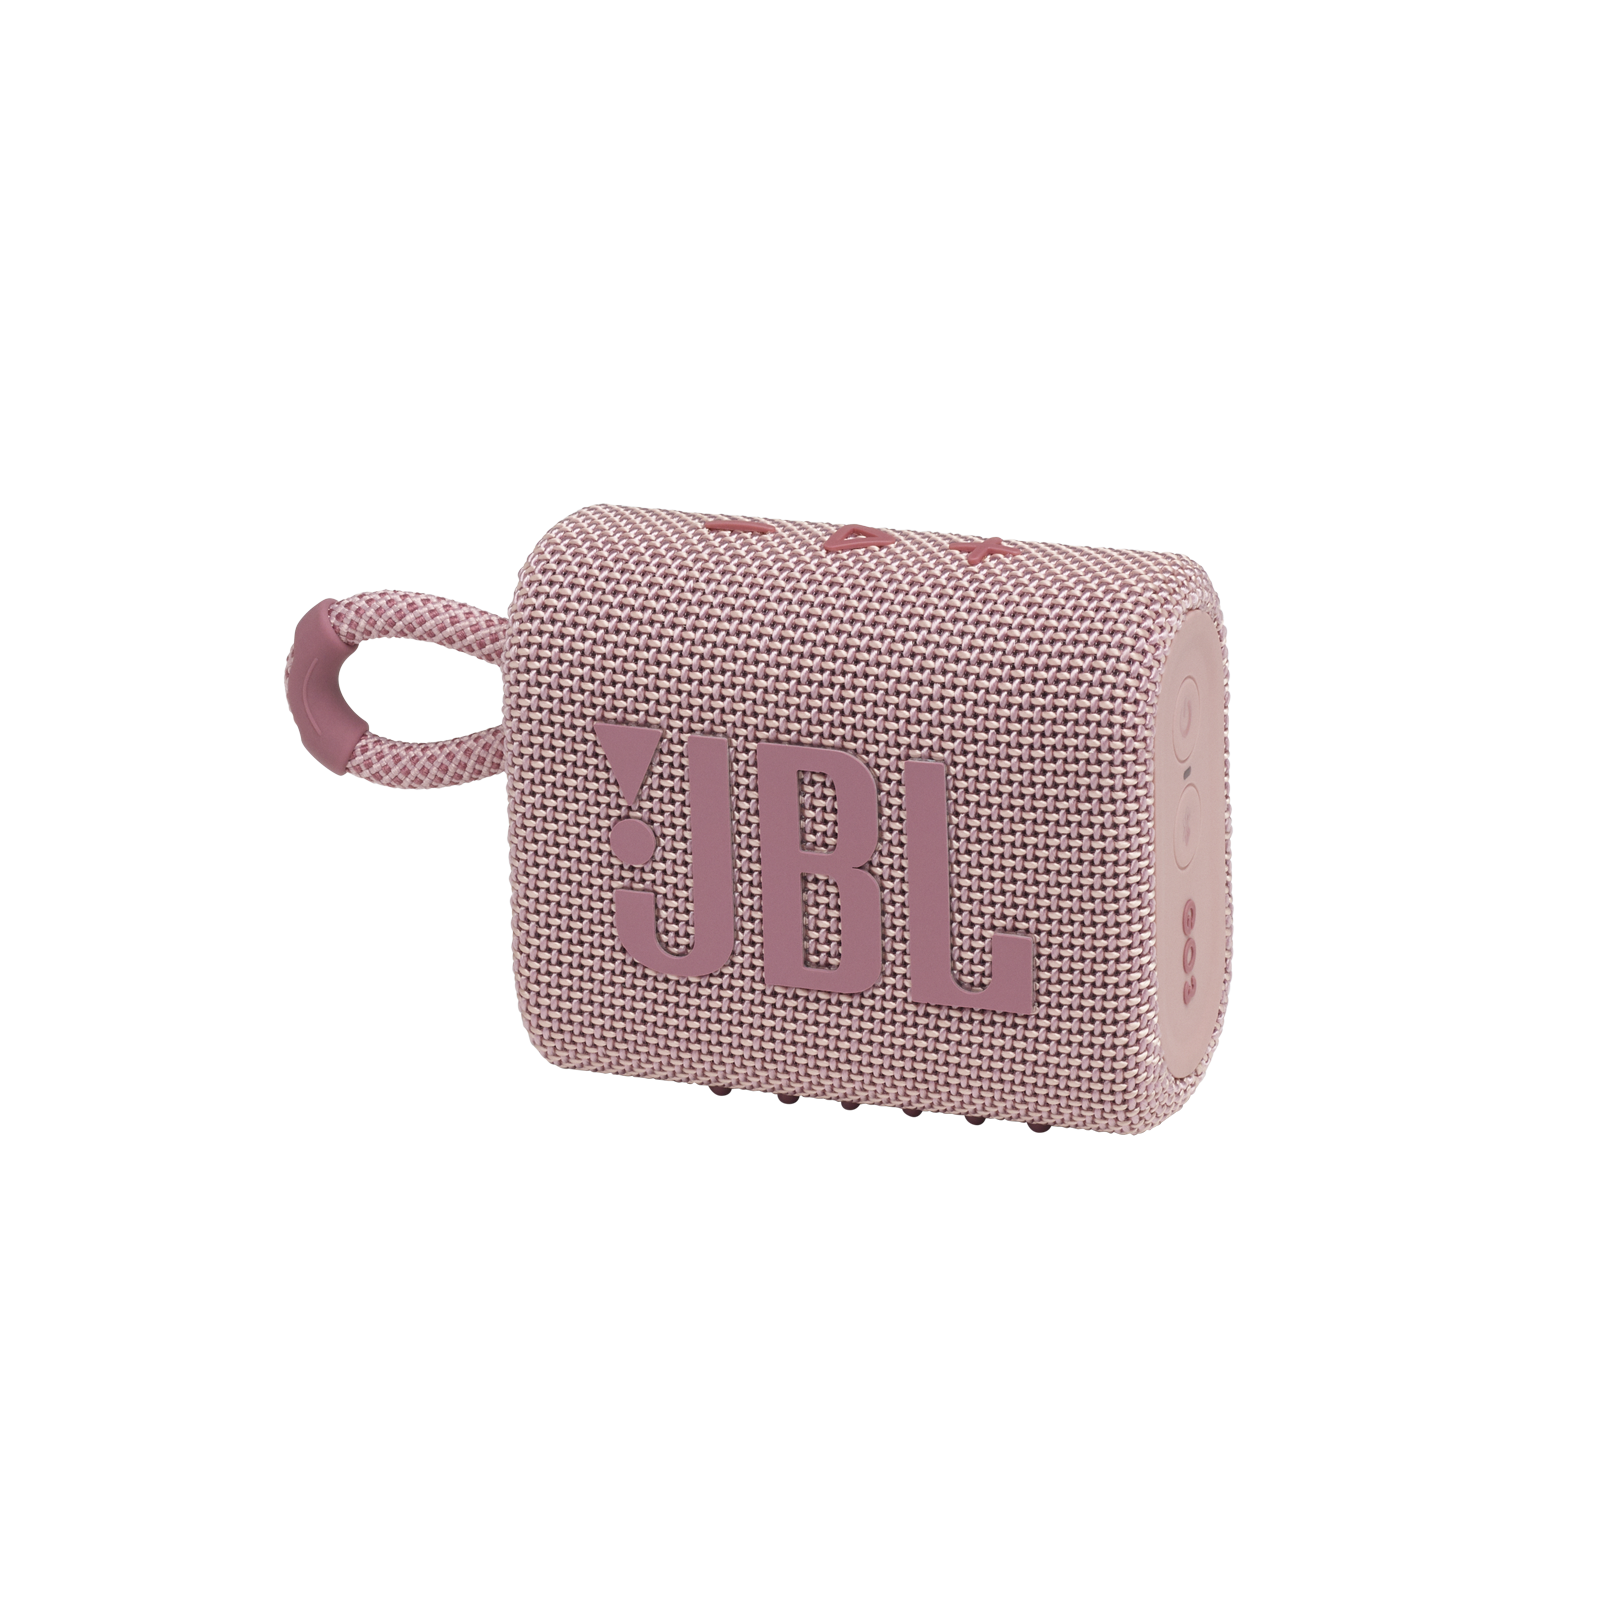 JBL GO 3 - Pink - Portable Waterproof Speaker - Hero